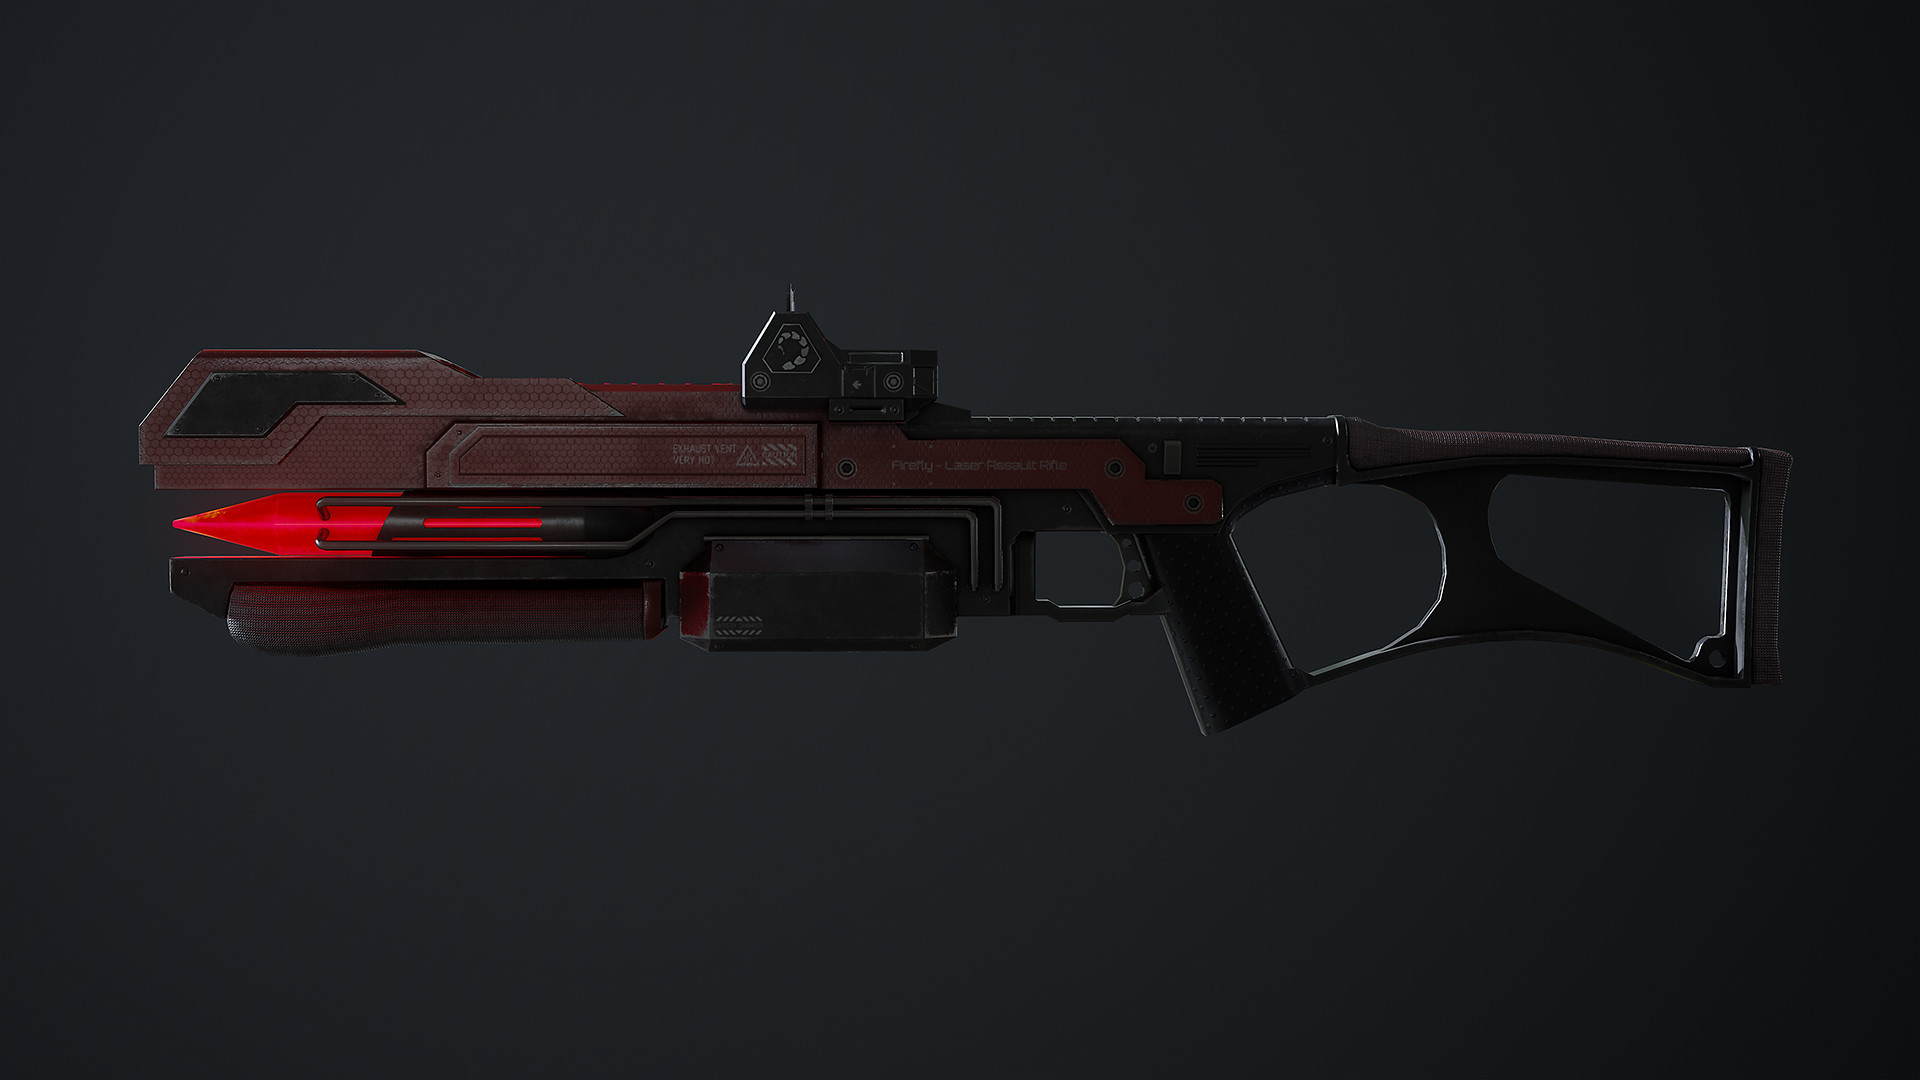 Waqas iqbal rx laserrifle render 06